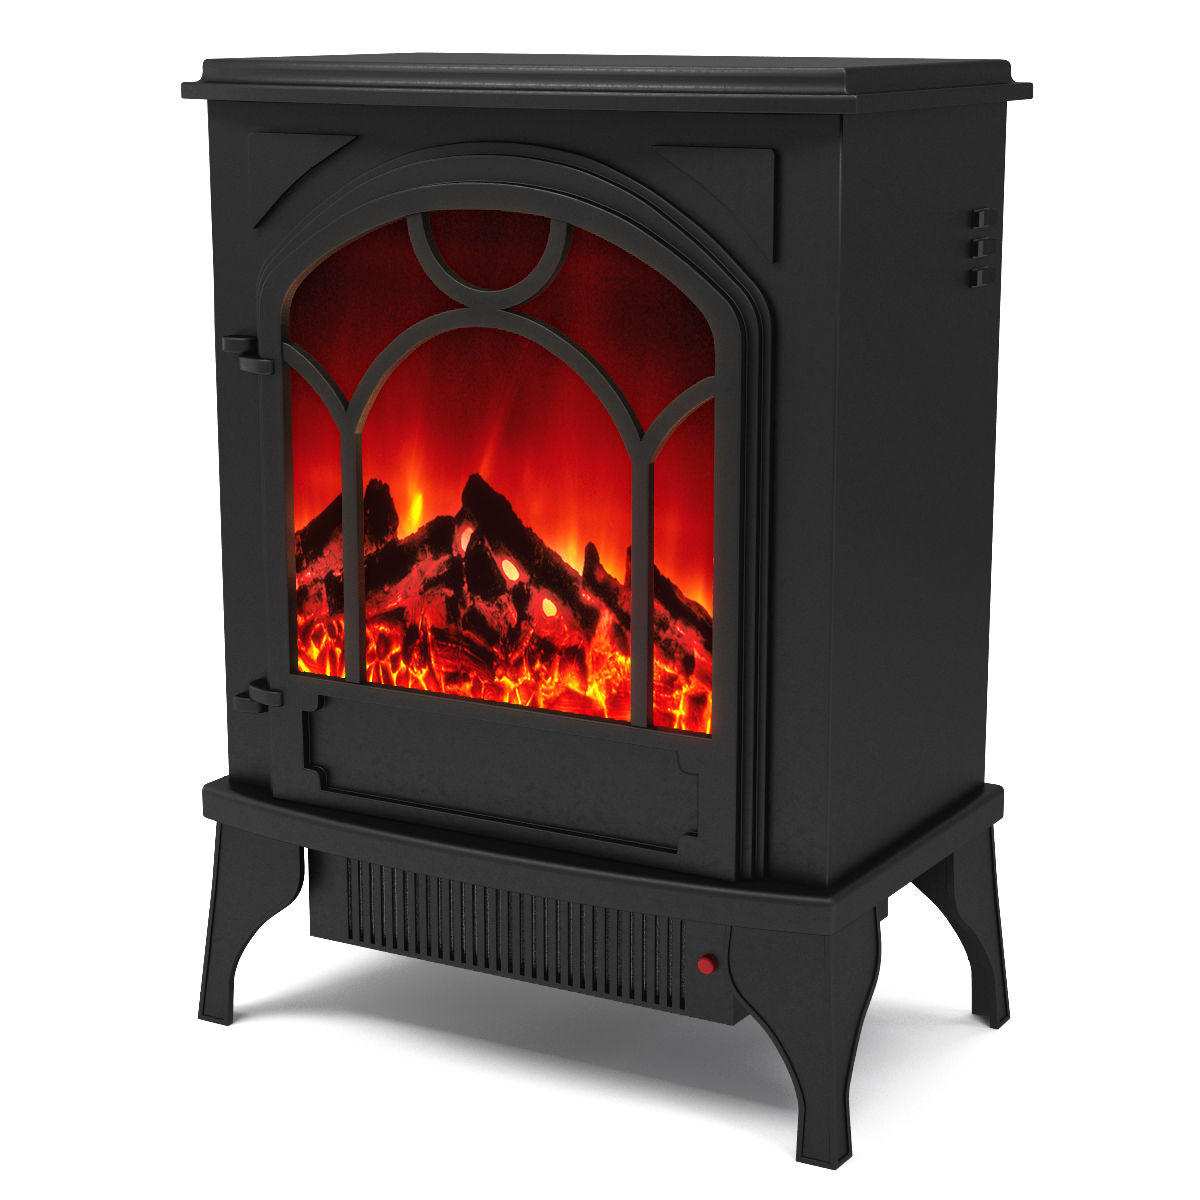 Aries Electric Fireplace Free Standing Portable Space